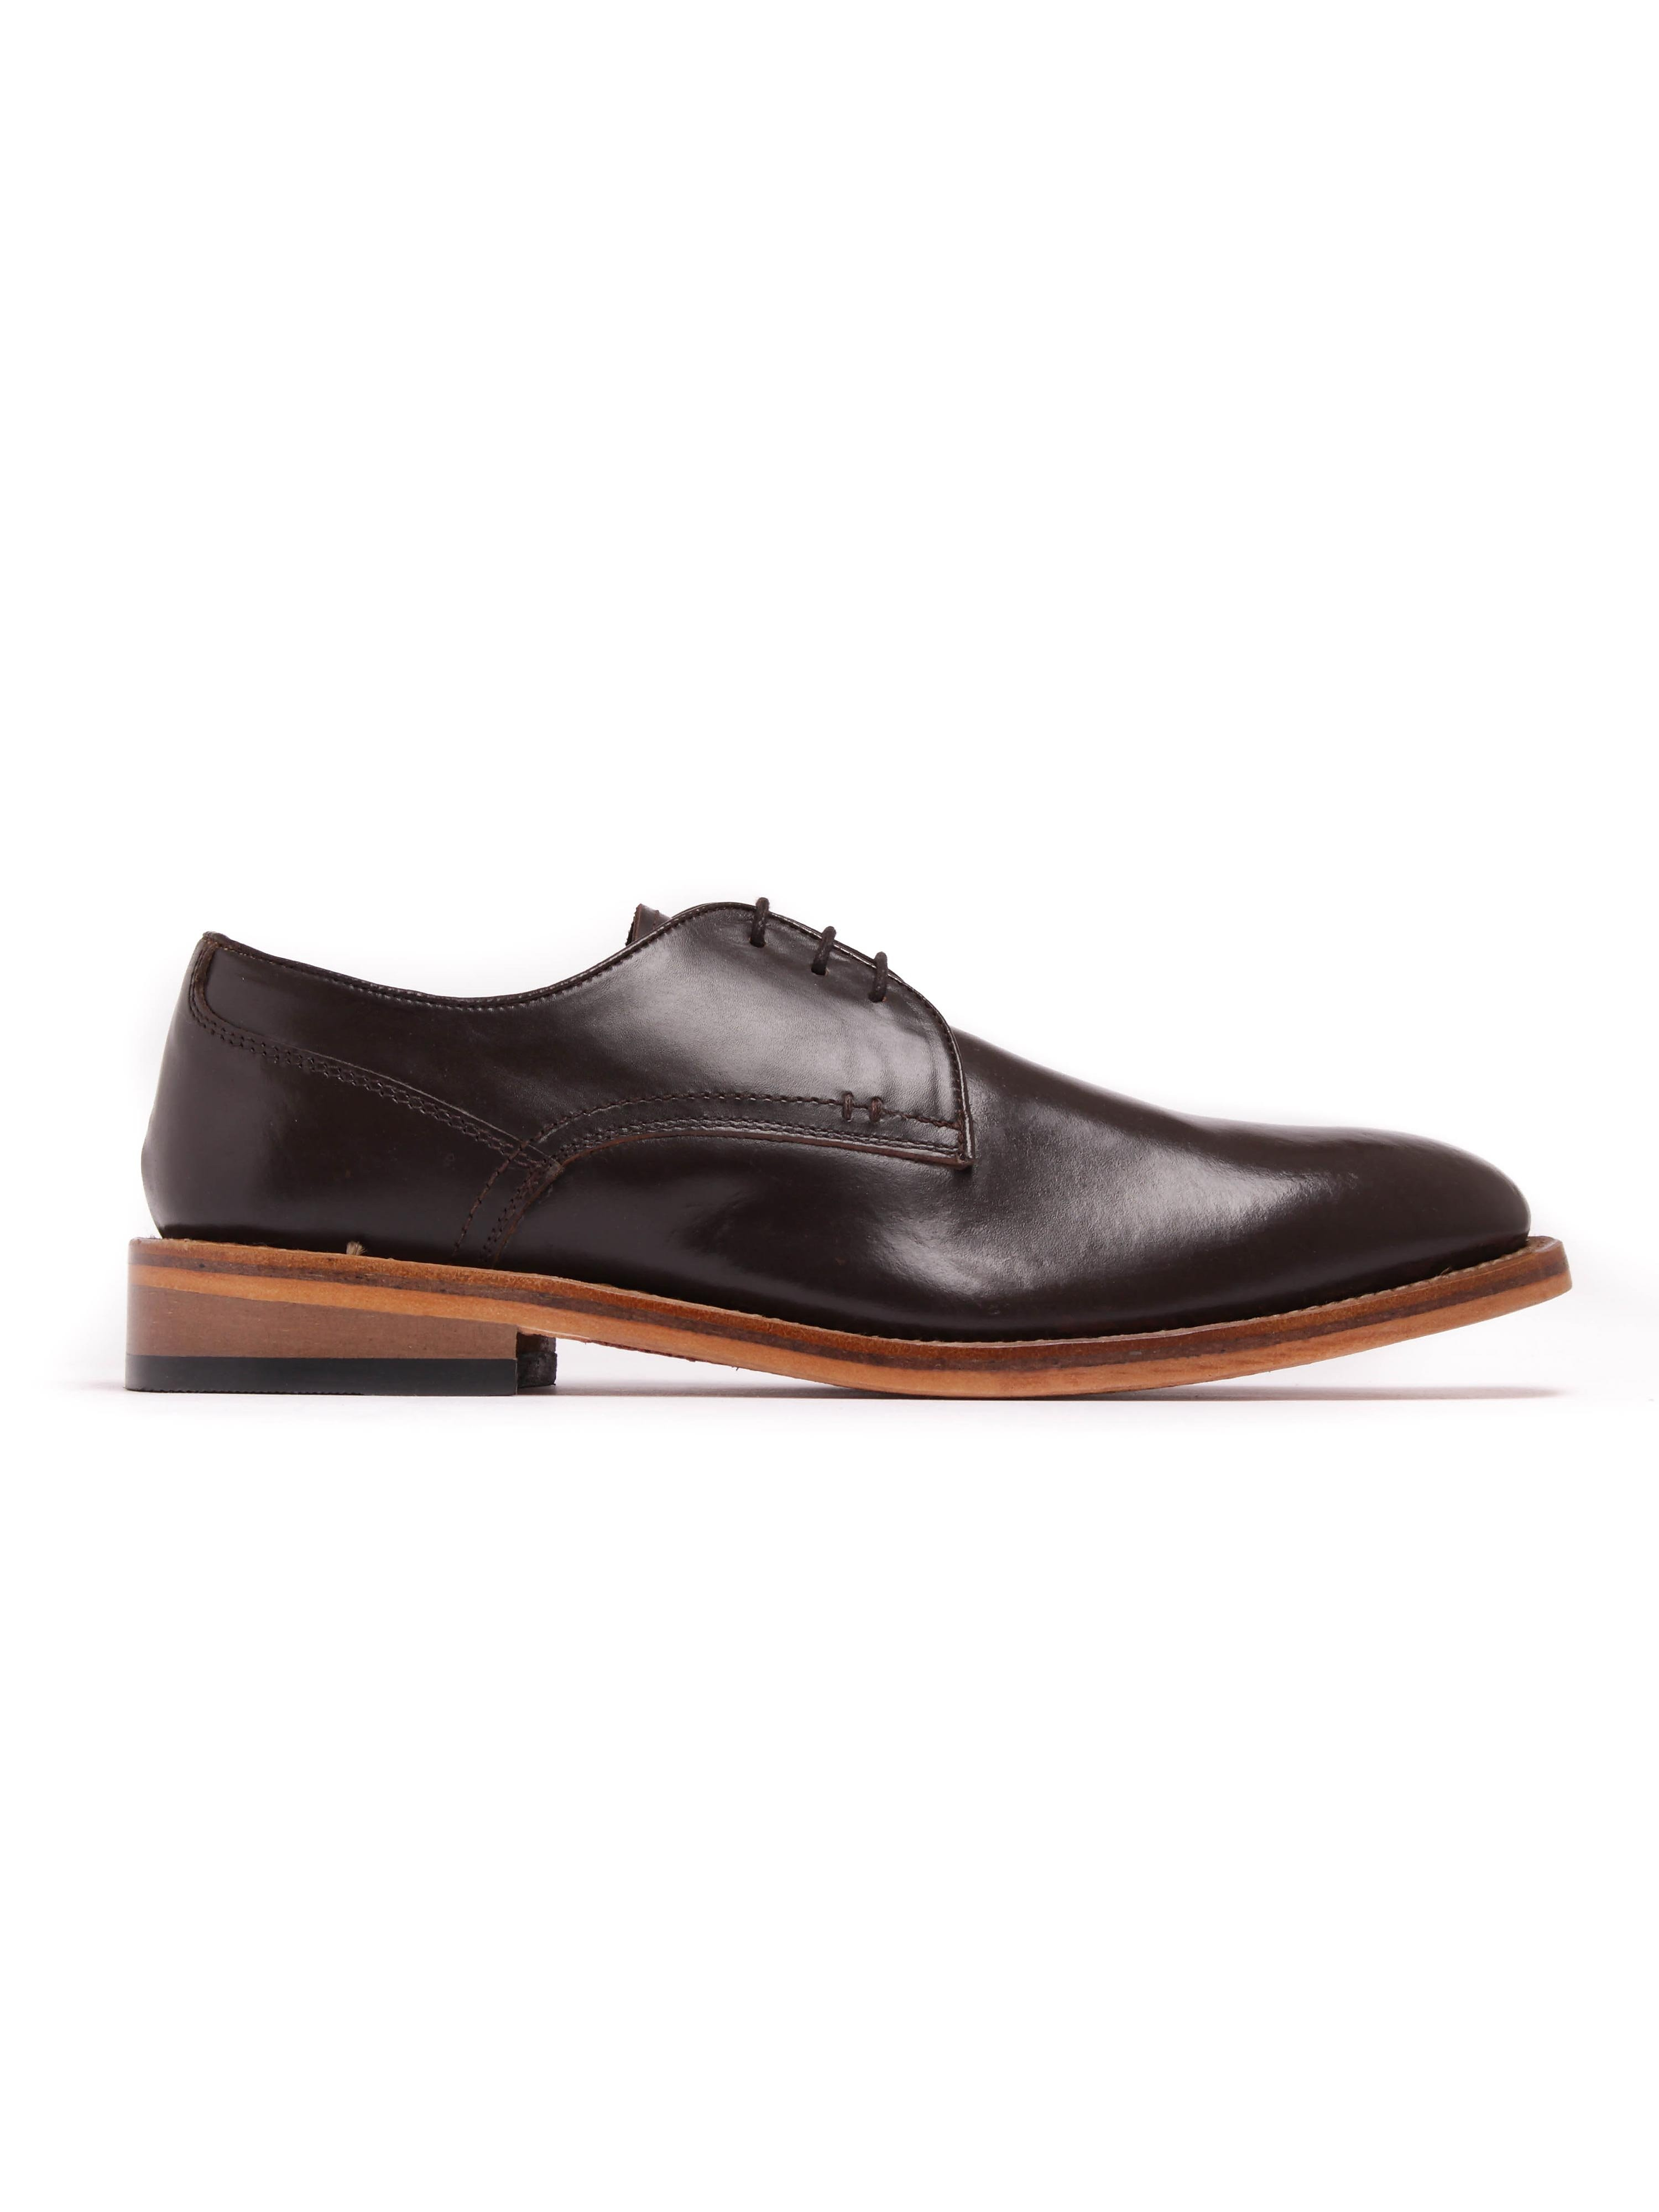 Russell Thomas Mens Surrey Plain Dark Brown Leather Derby Shoes